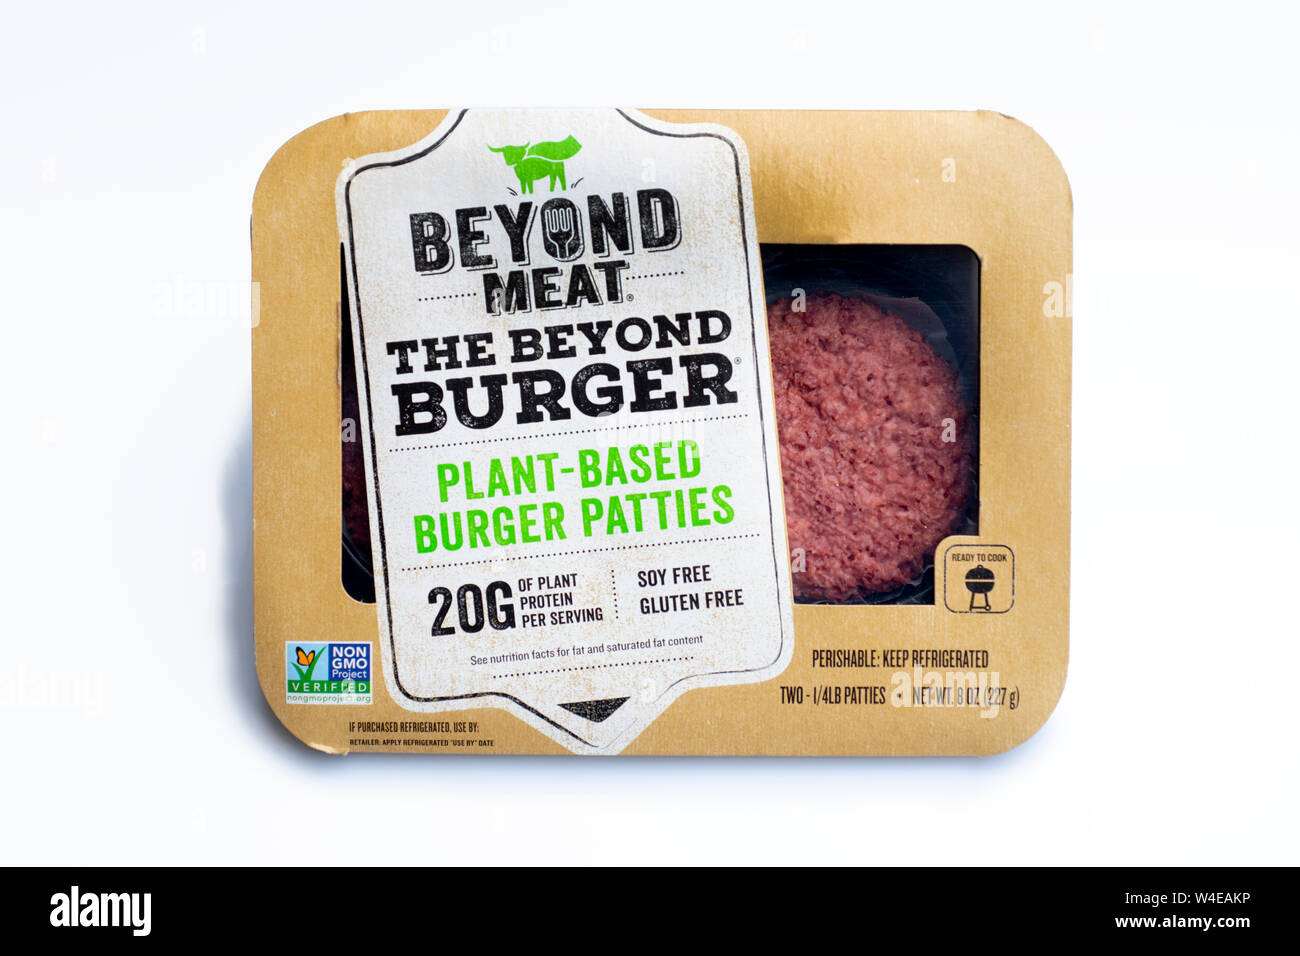 Beyond Meat plant based meatless food products for vegan and vegetarian eating burger patties Stock Photo